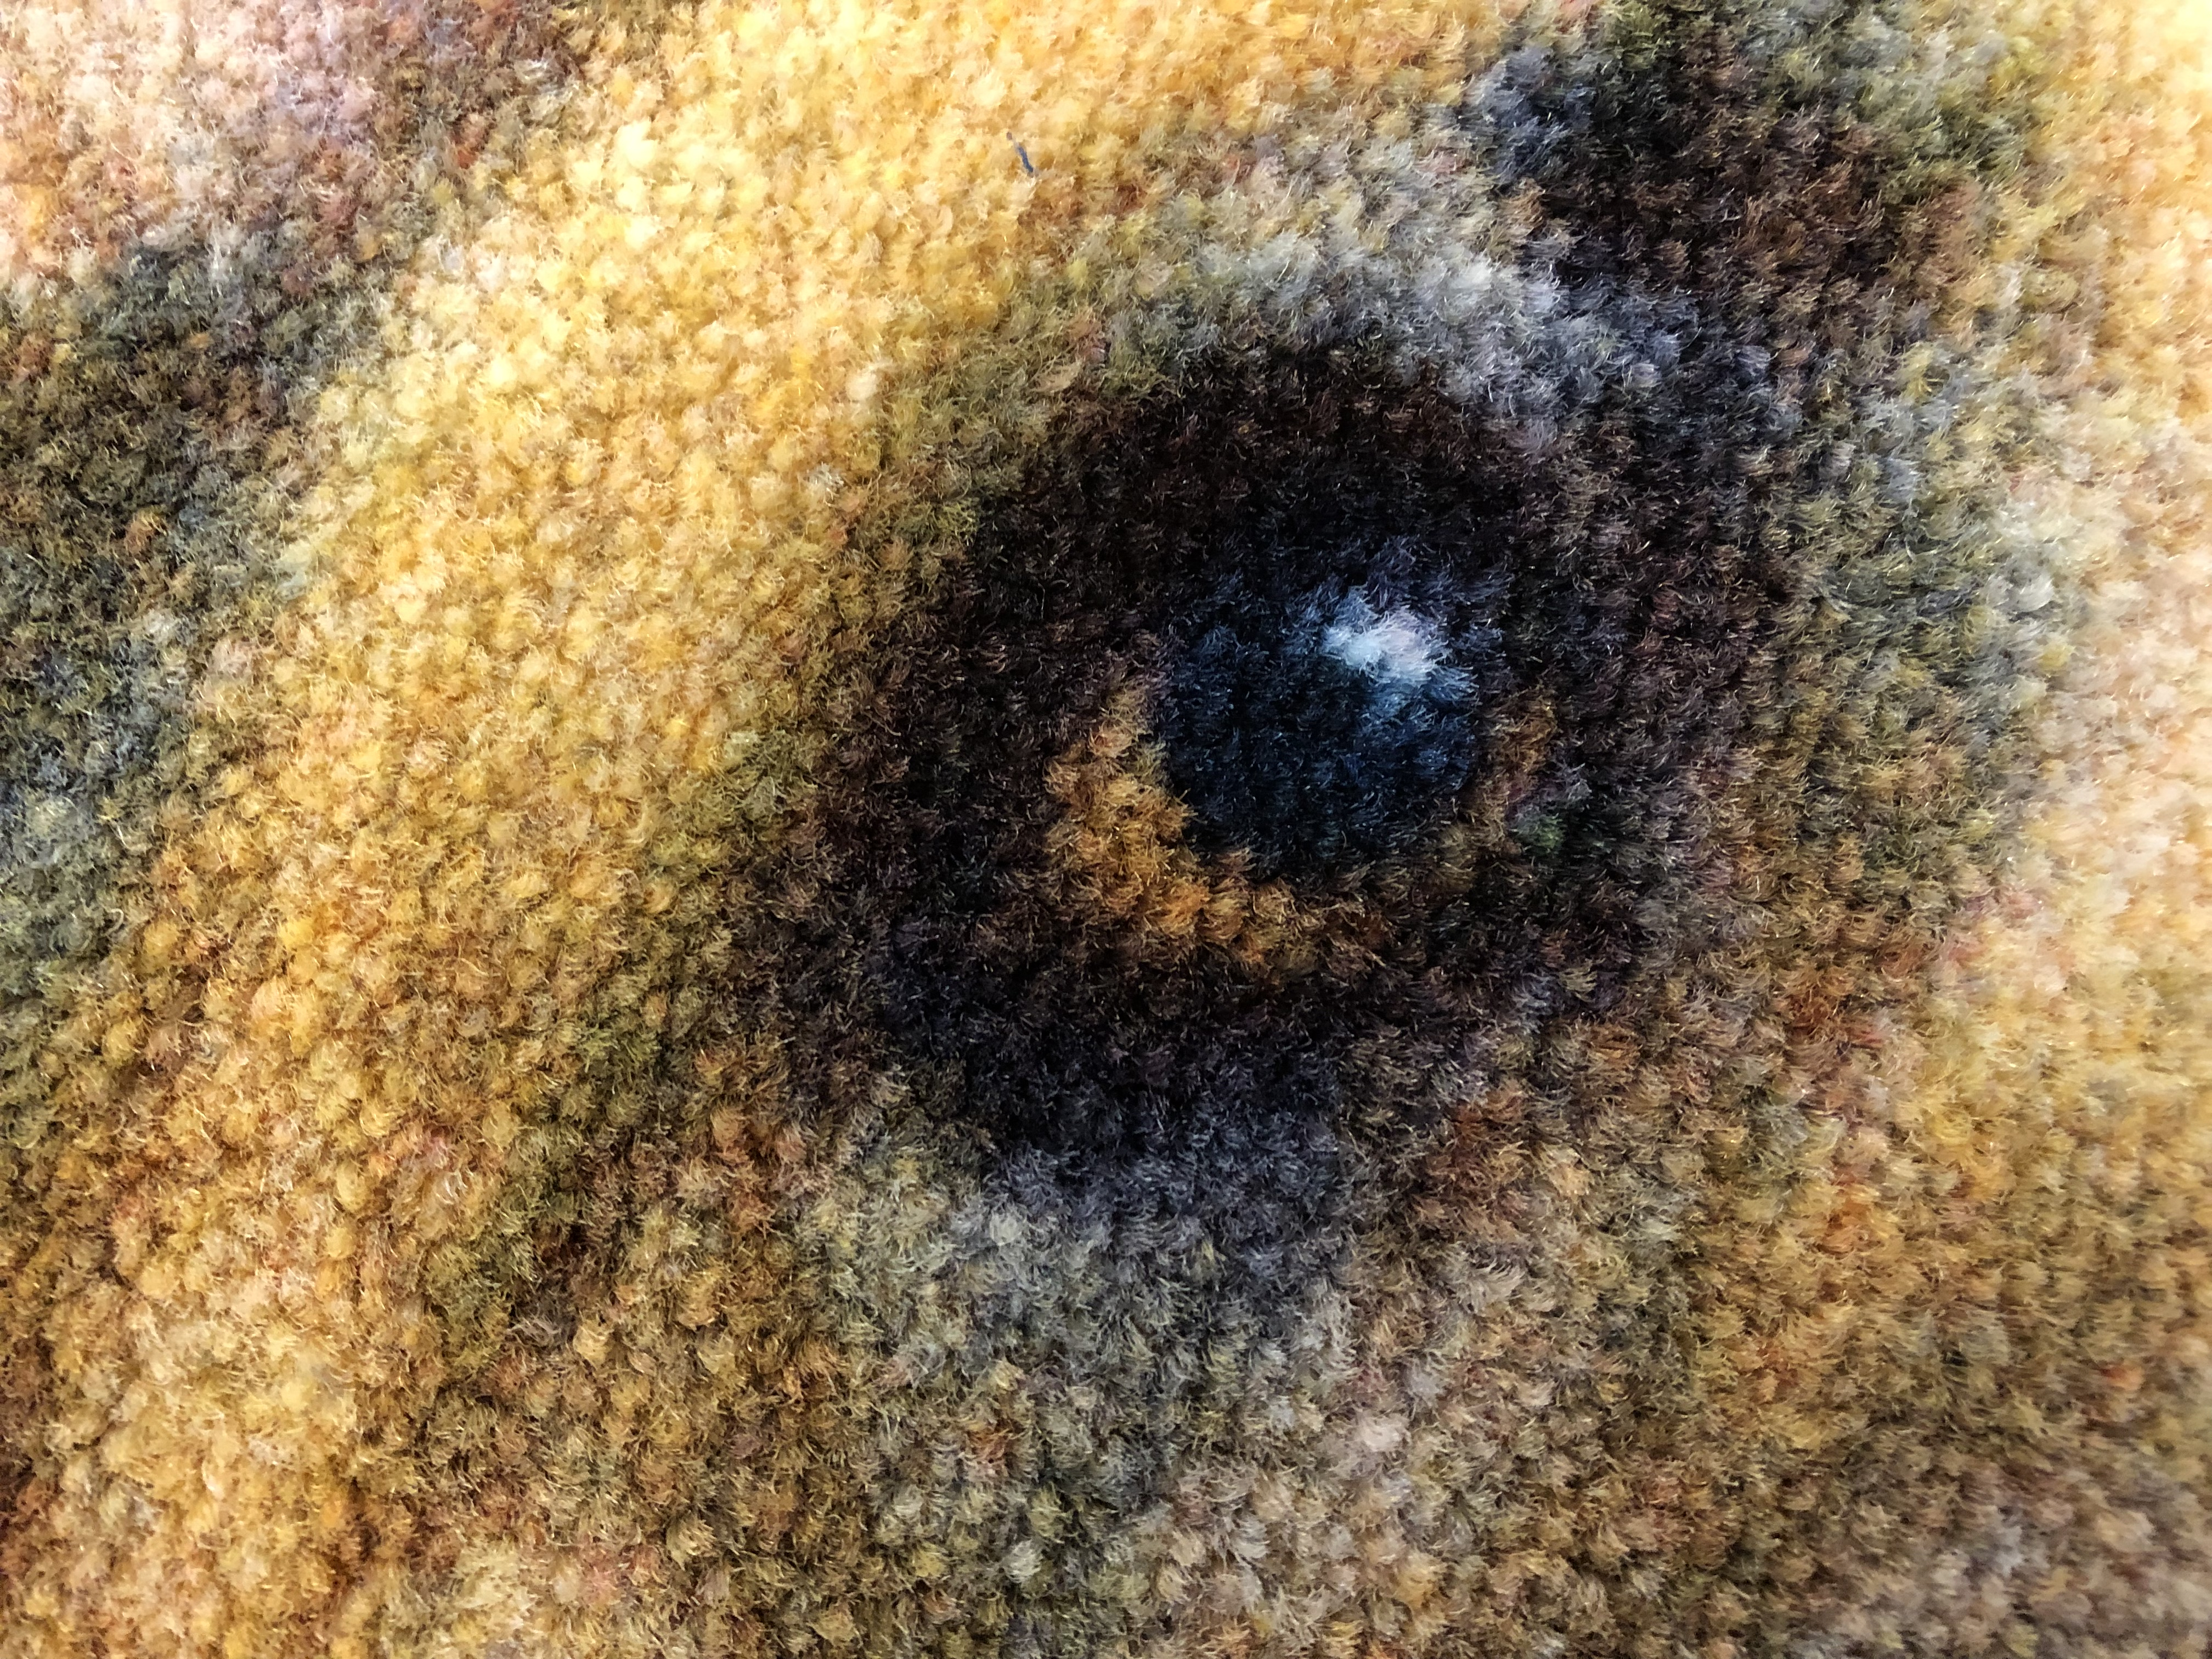 Close up image of your pet